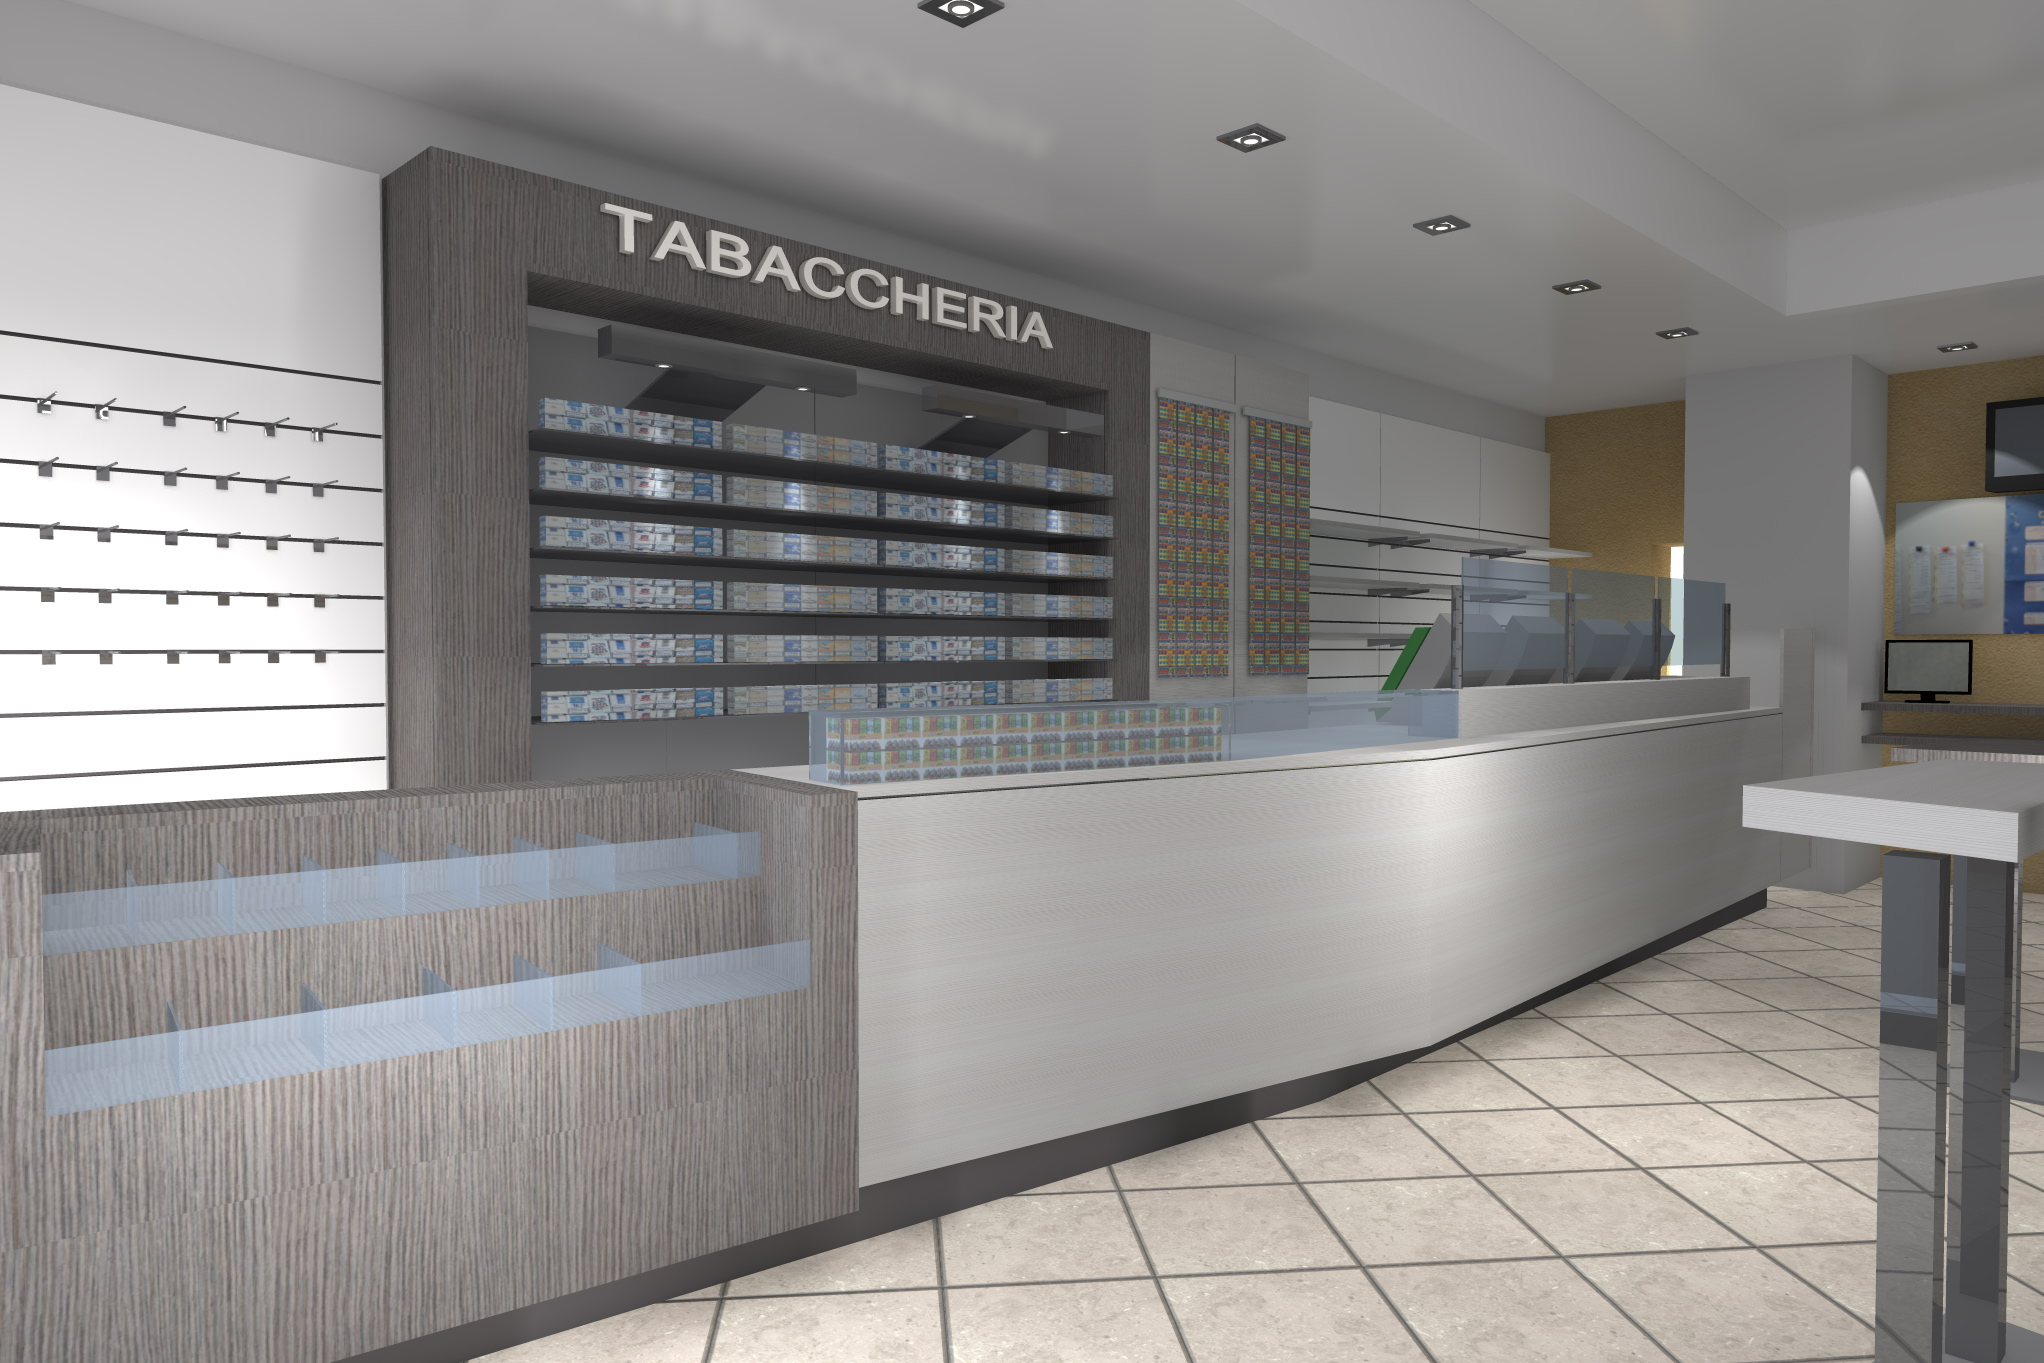 tabaccheria ardelli cavour to nuove forme